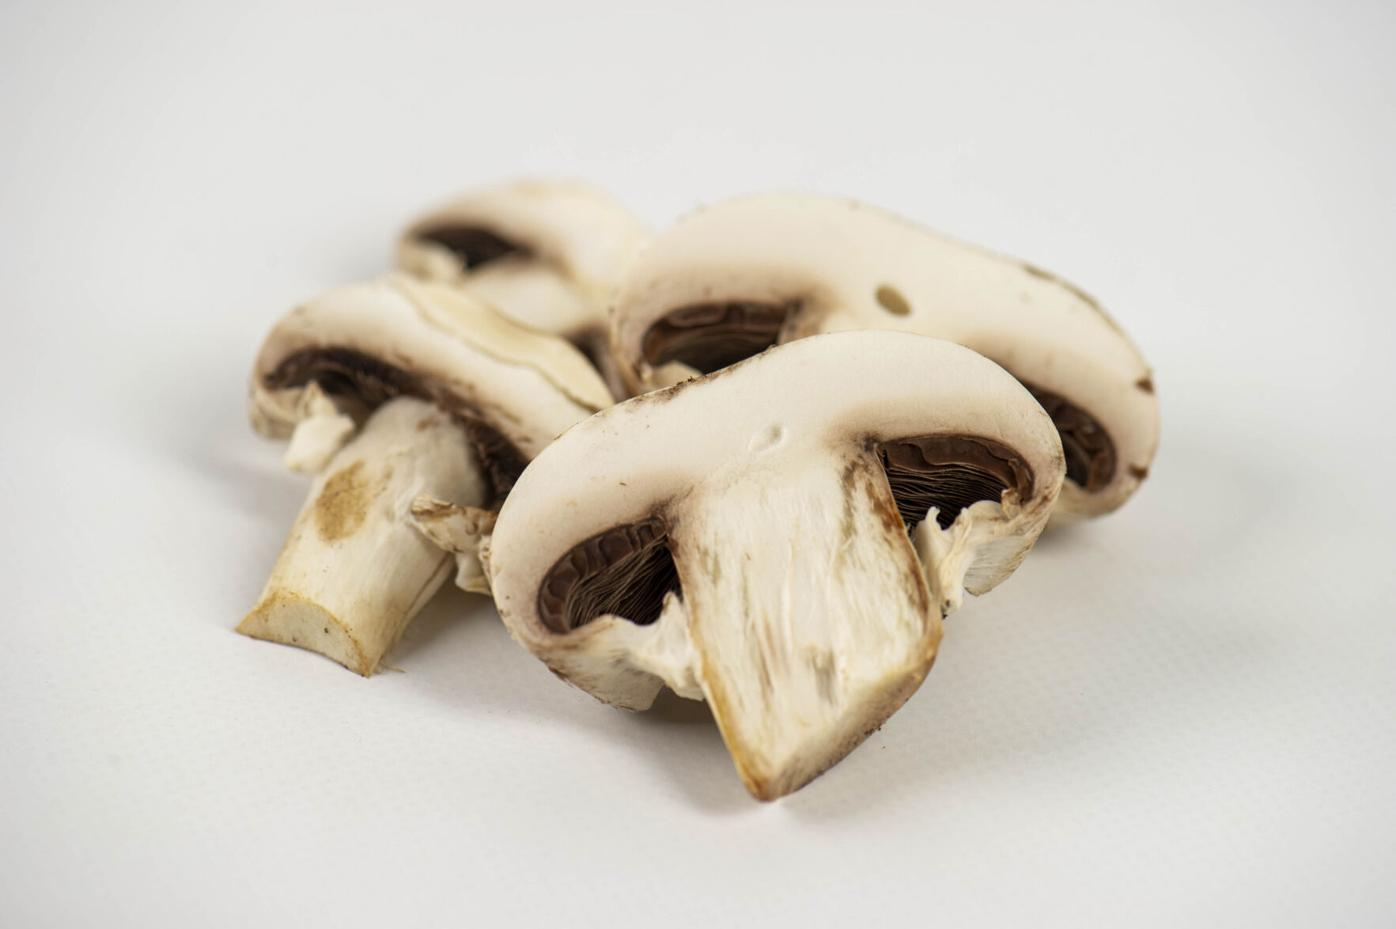 Food Stacy Reed mushrooms 2 F10.jpg